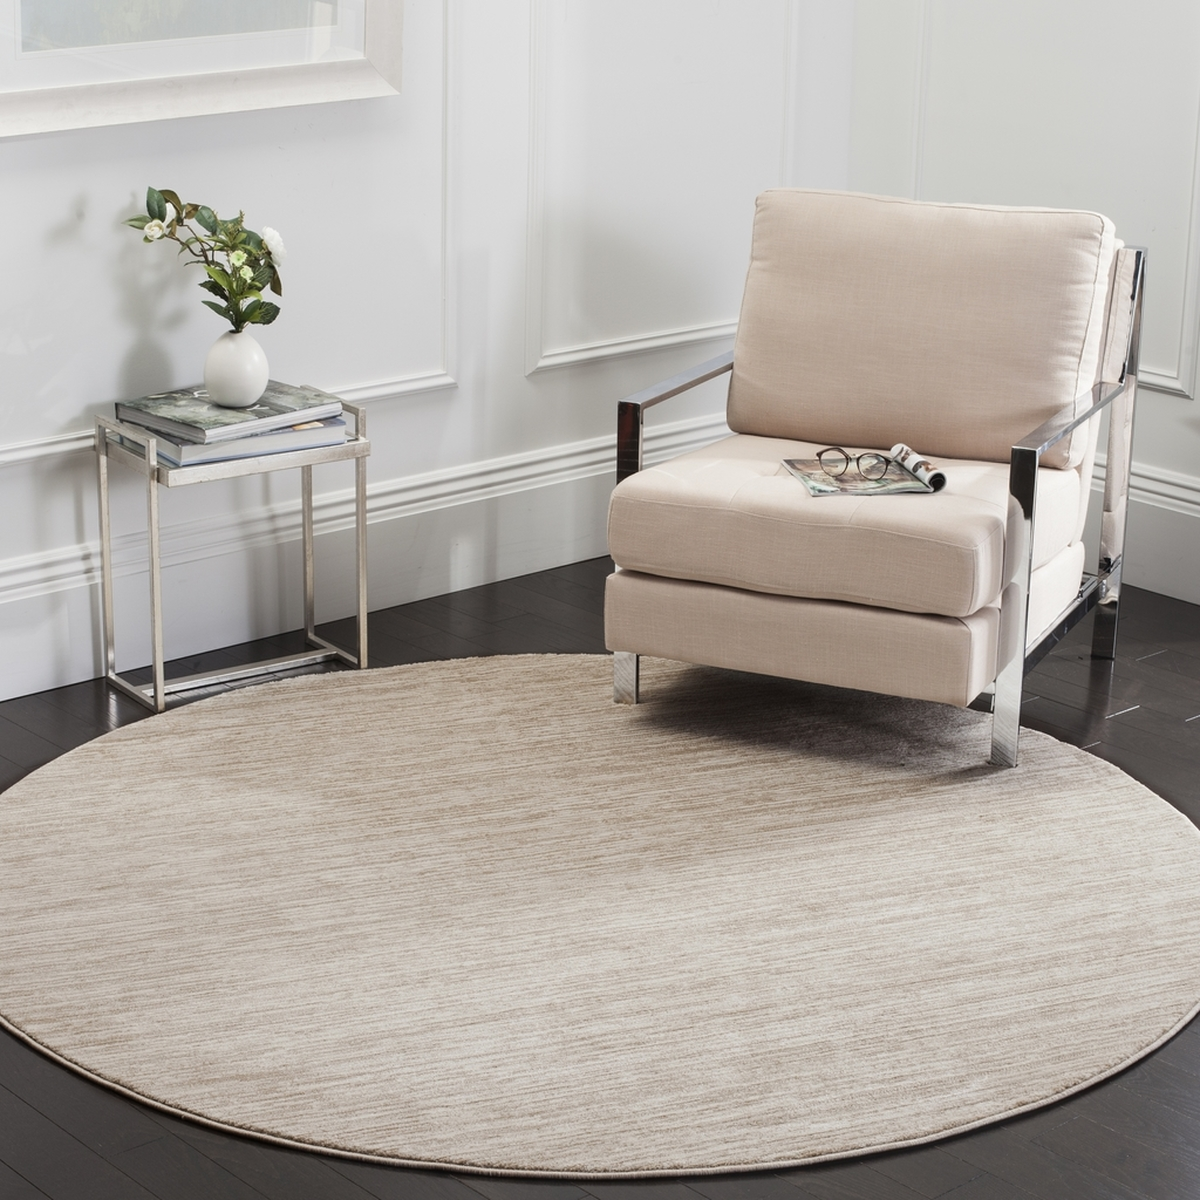 Rug Vsn606f Vision Area Rugs By Safavieh